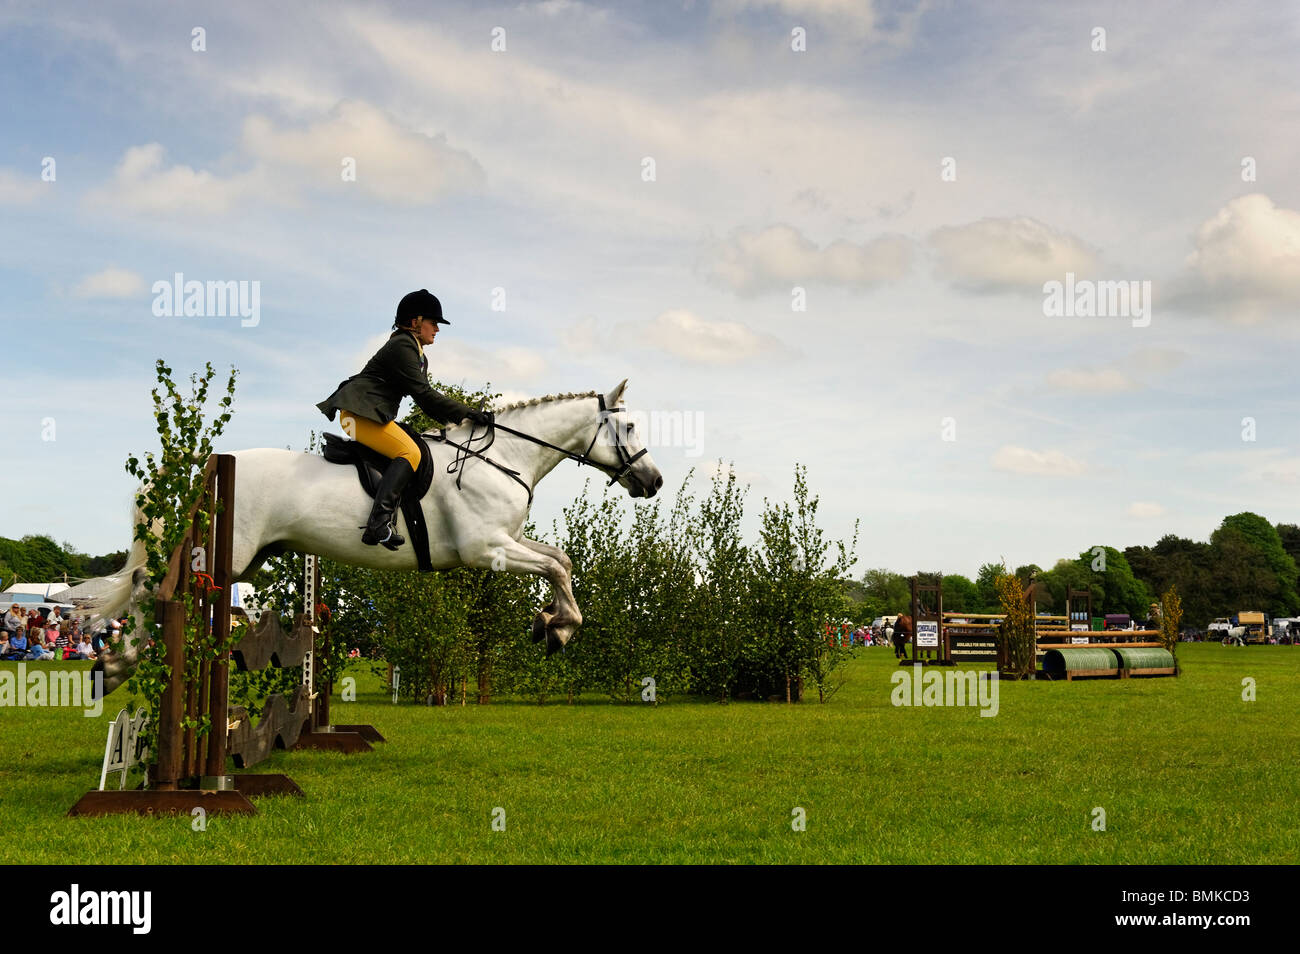 Equestrian event at the Northumberland County Show in Corbridge - Stock Image